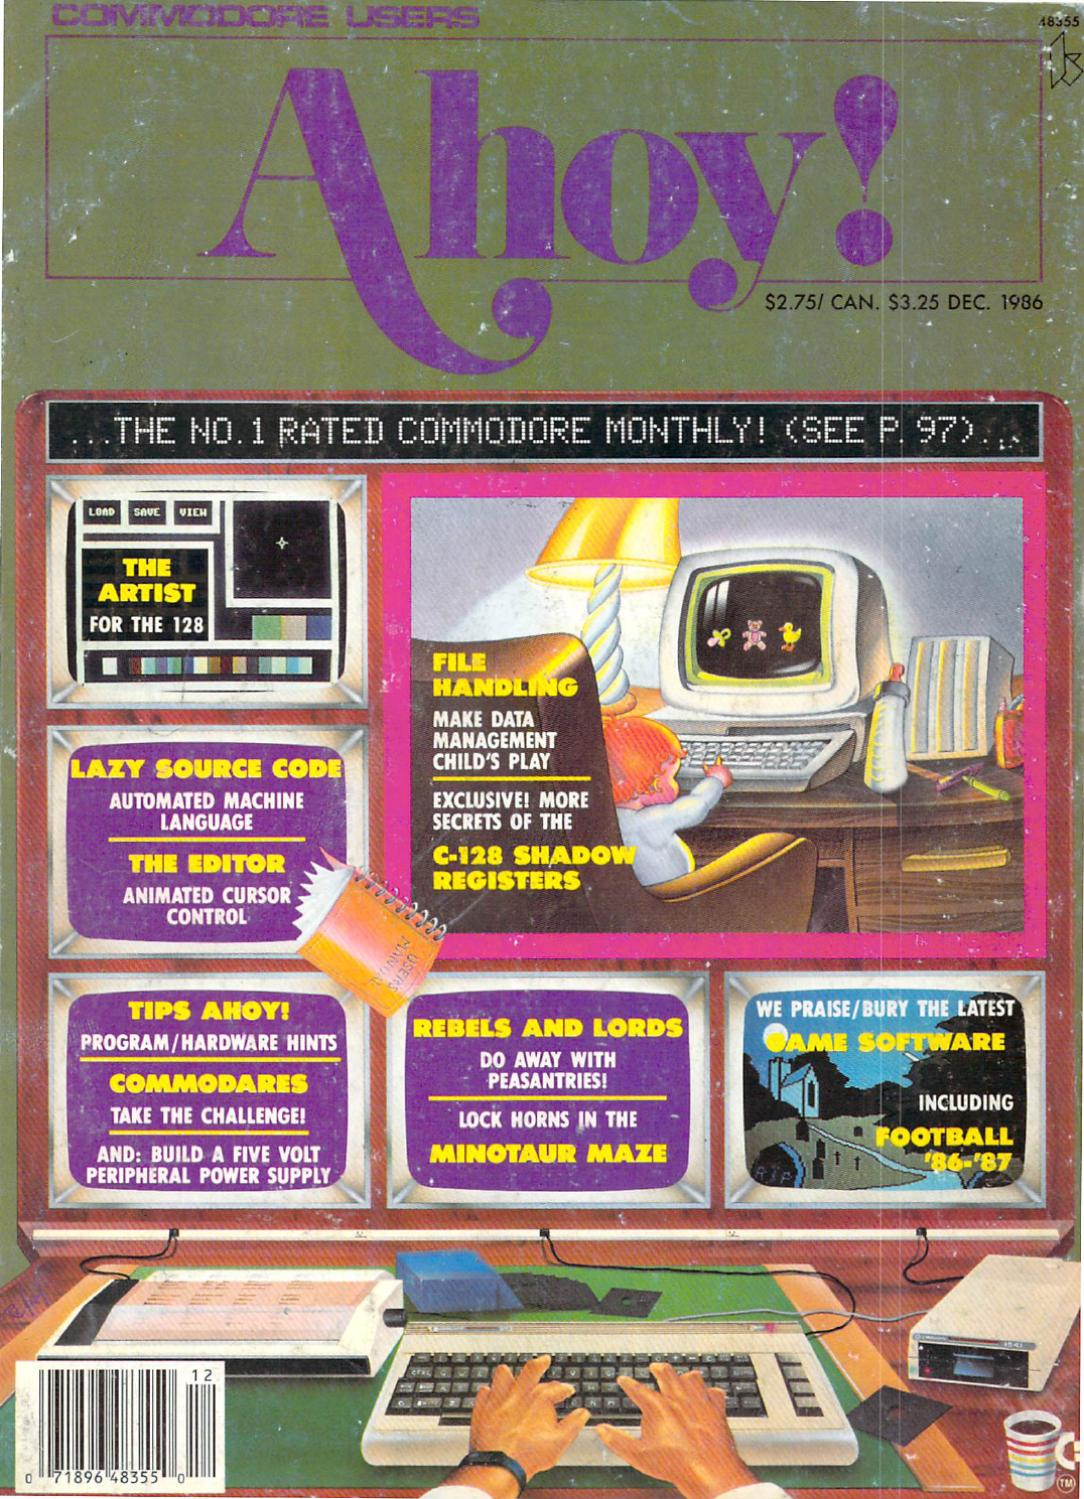 Ahoy_Issue_36_1986_Dec by Zetmoon - issuu